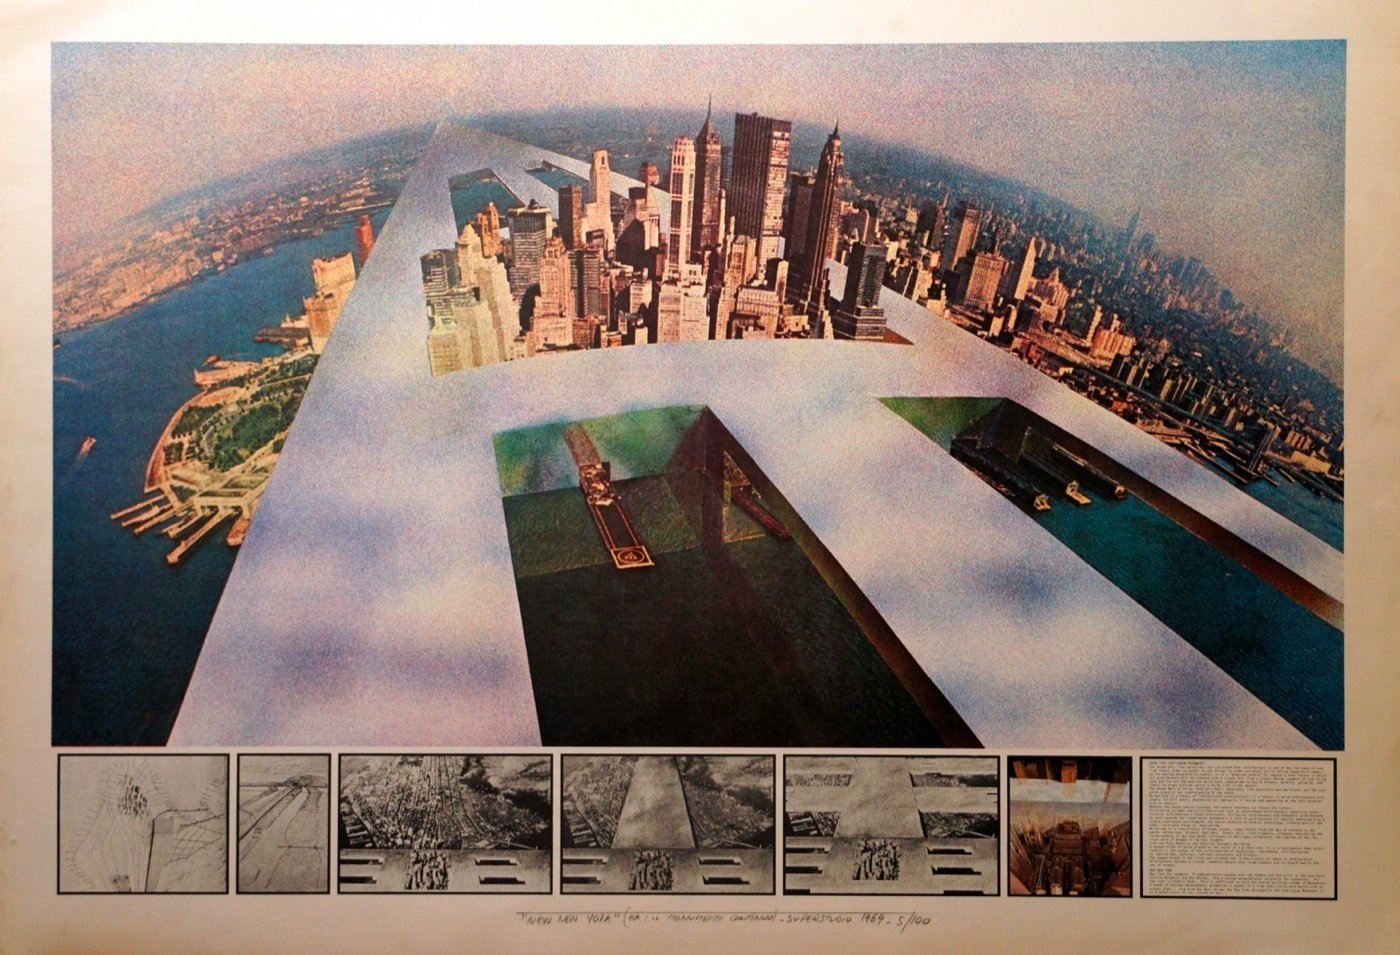 Continuous Monument and 12 Ideal Cities by Superstudio 1969-1972